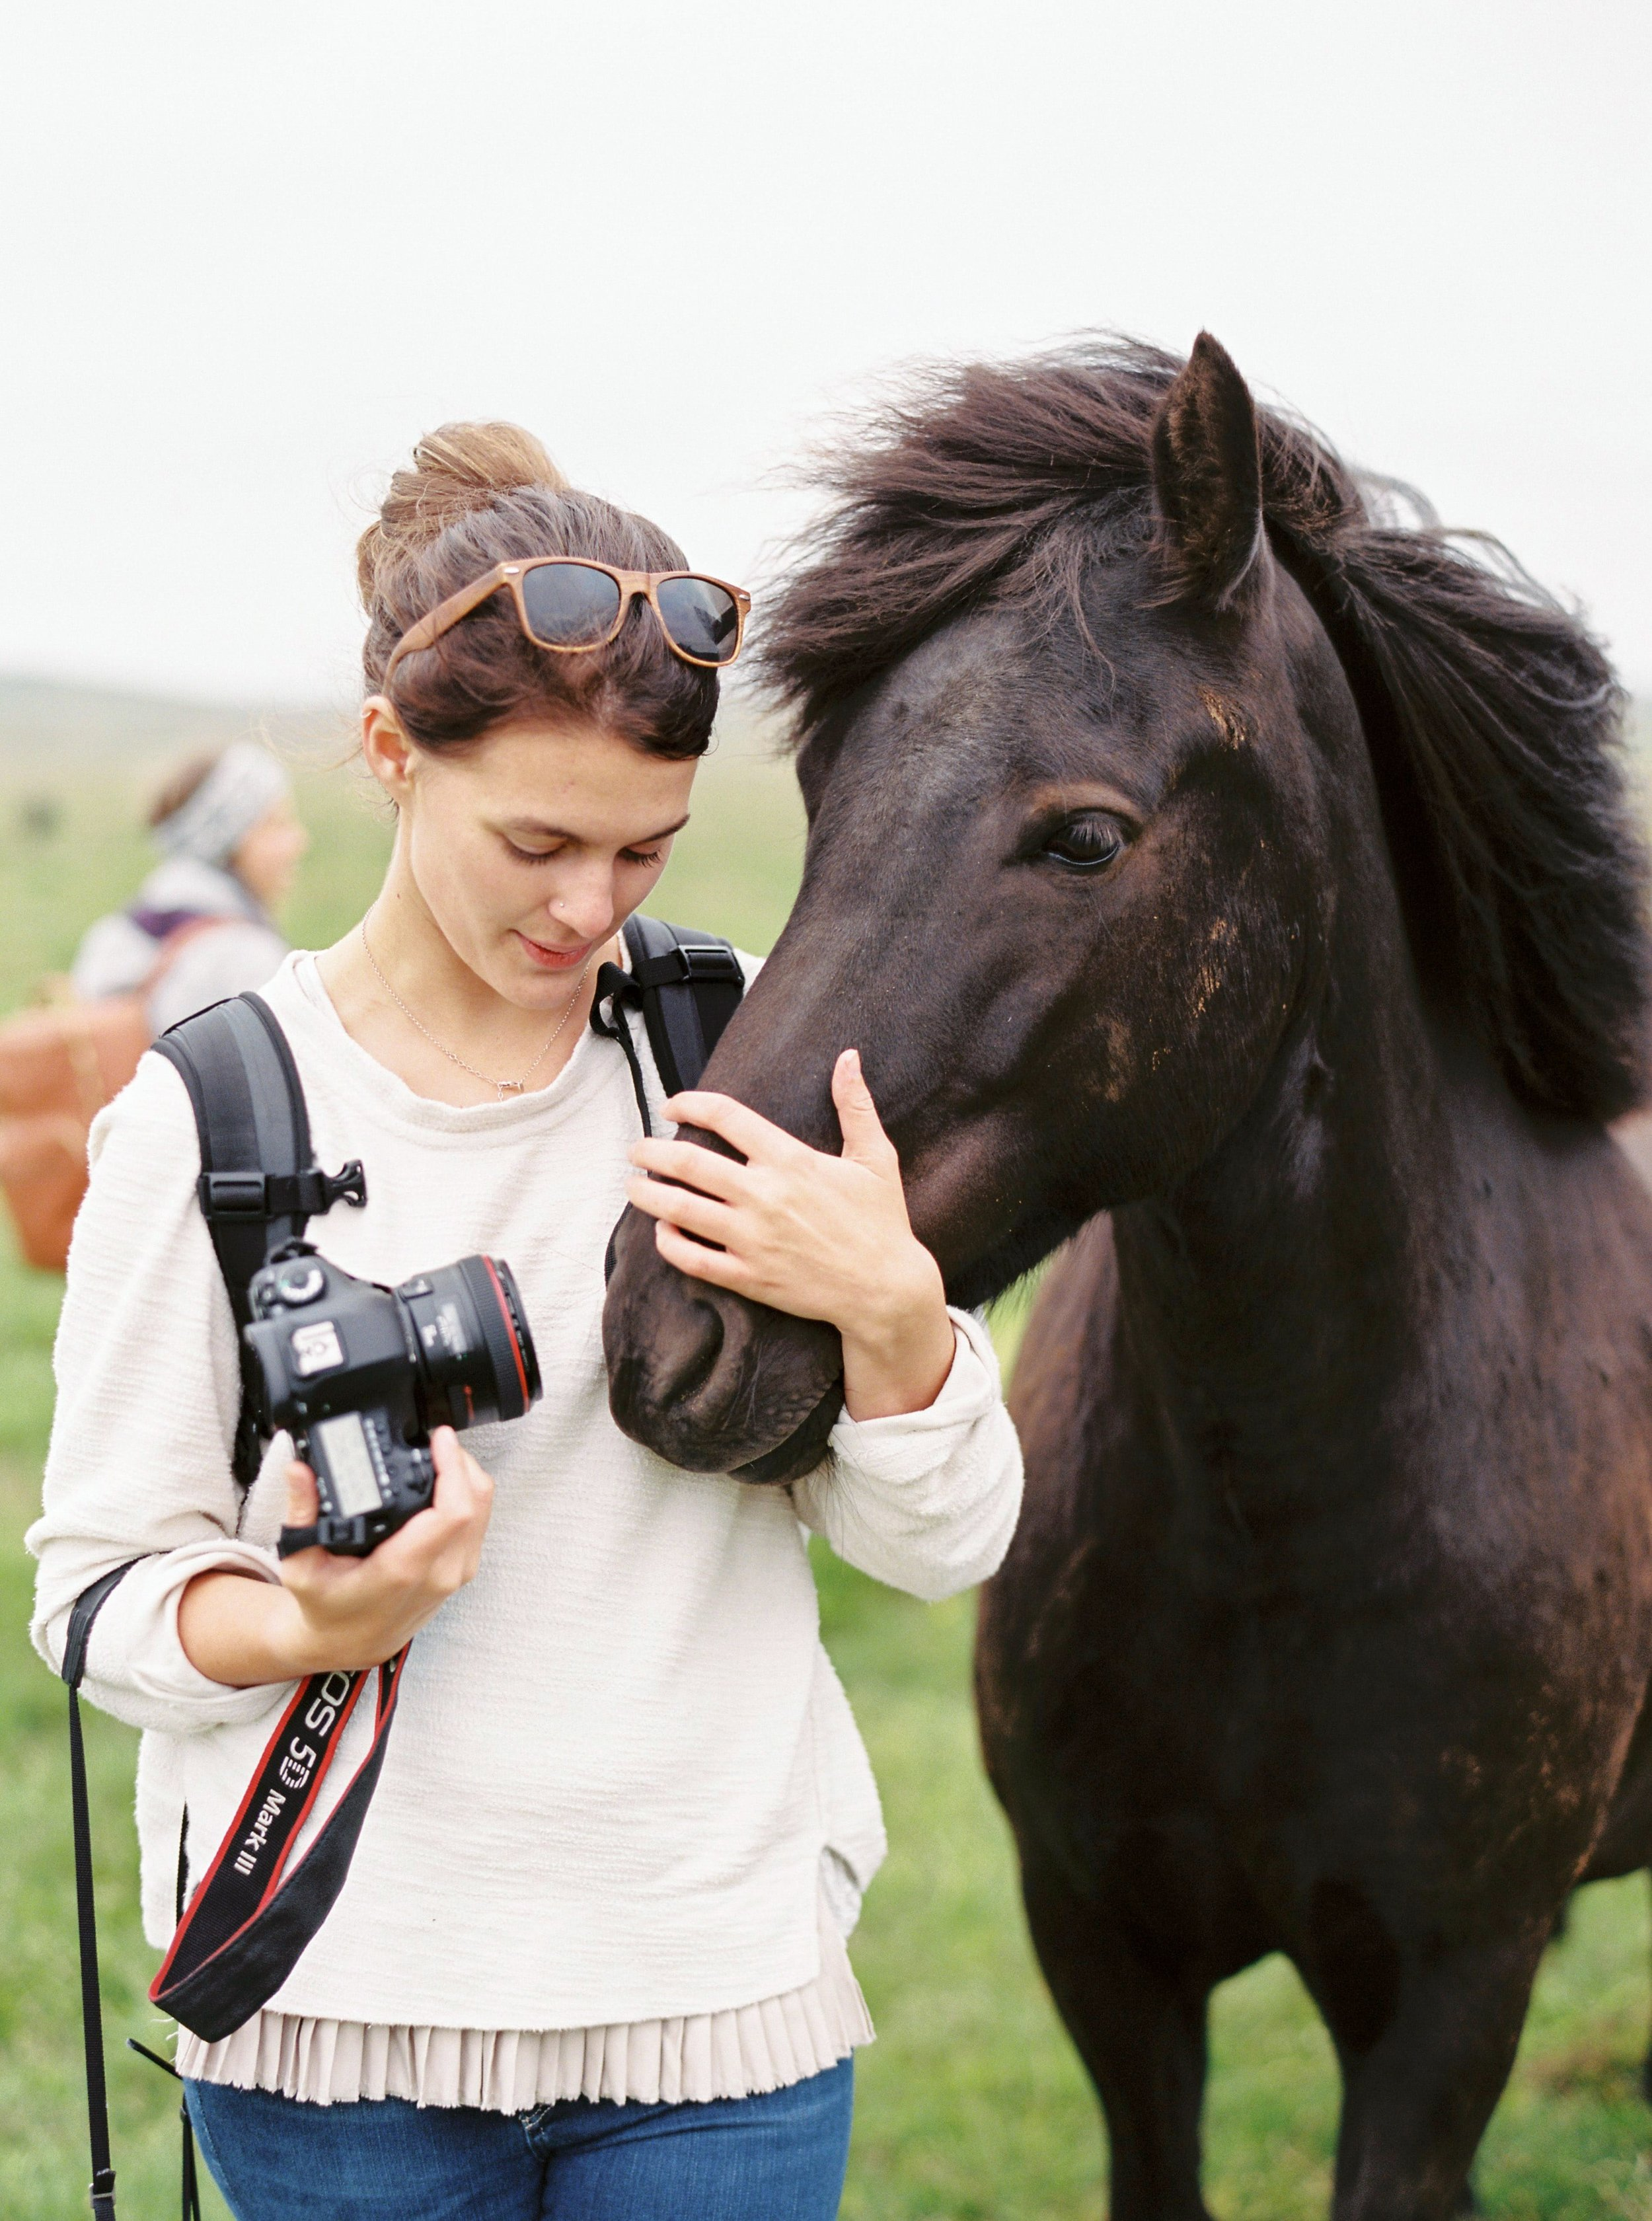 Horses in Iceland by Kristin Sweeting now on Cottage Hill64.jpg